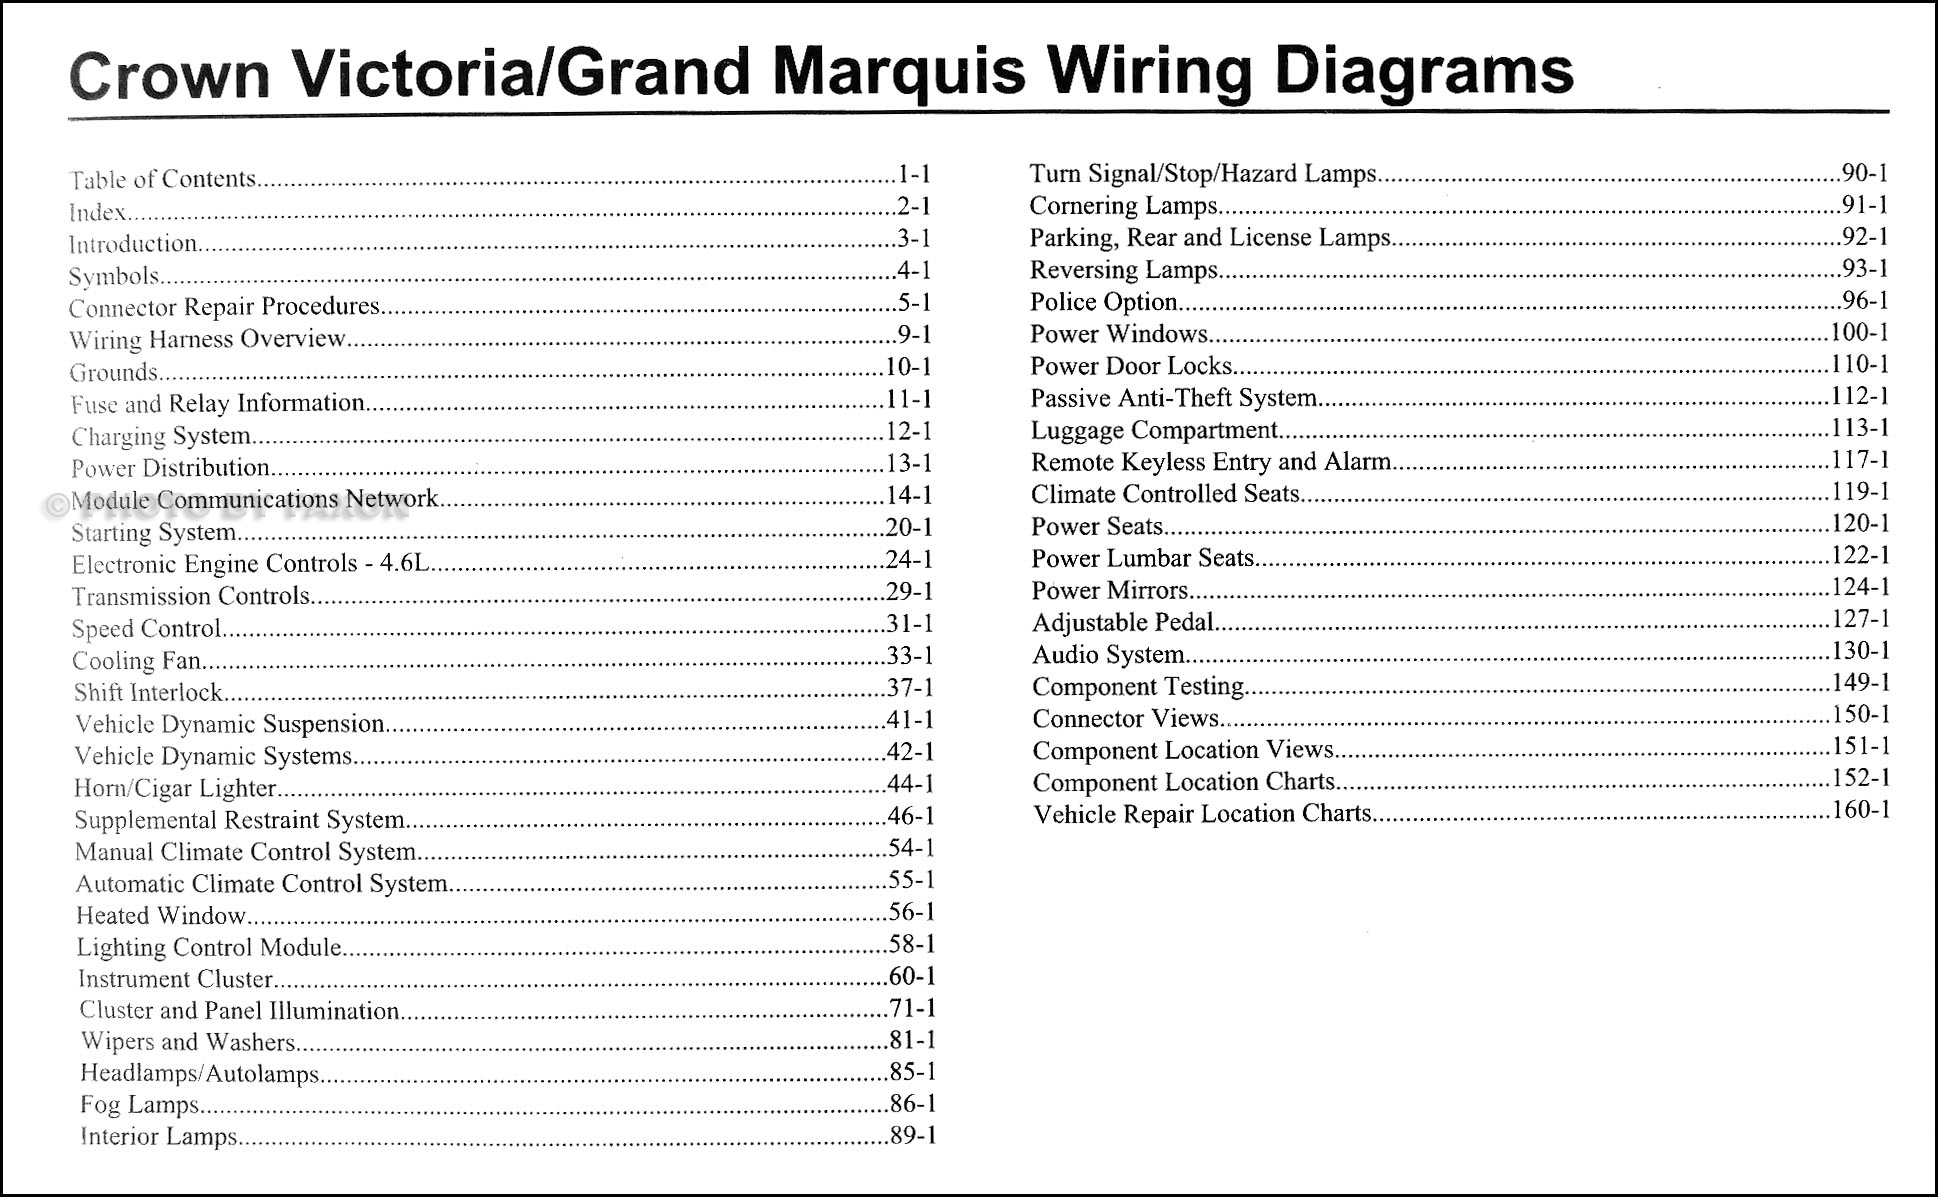 2009FordCrownVictoriaOWD TOC 2009 crown victoria & grand marquis original wiring diagram manual 2007 mercury grand marquis fuse box diagram at eliteediting.co